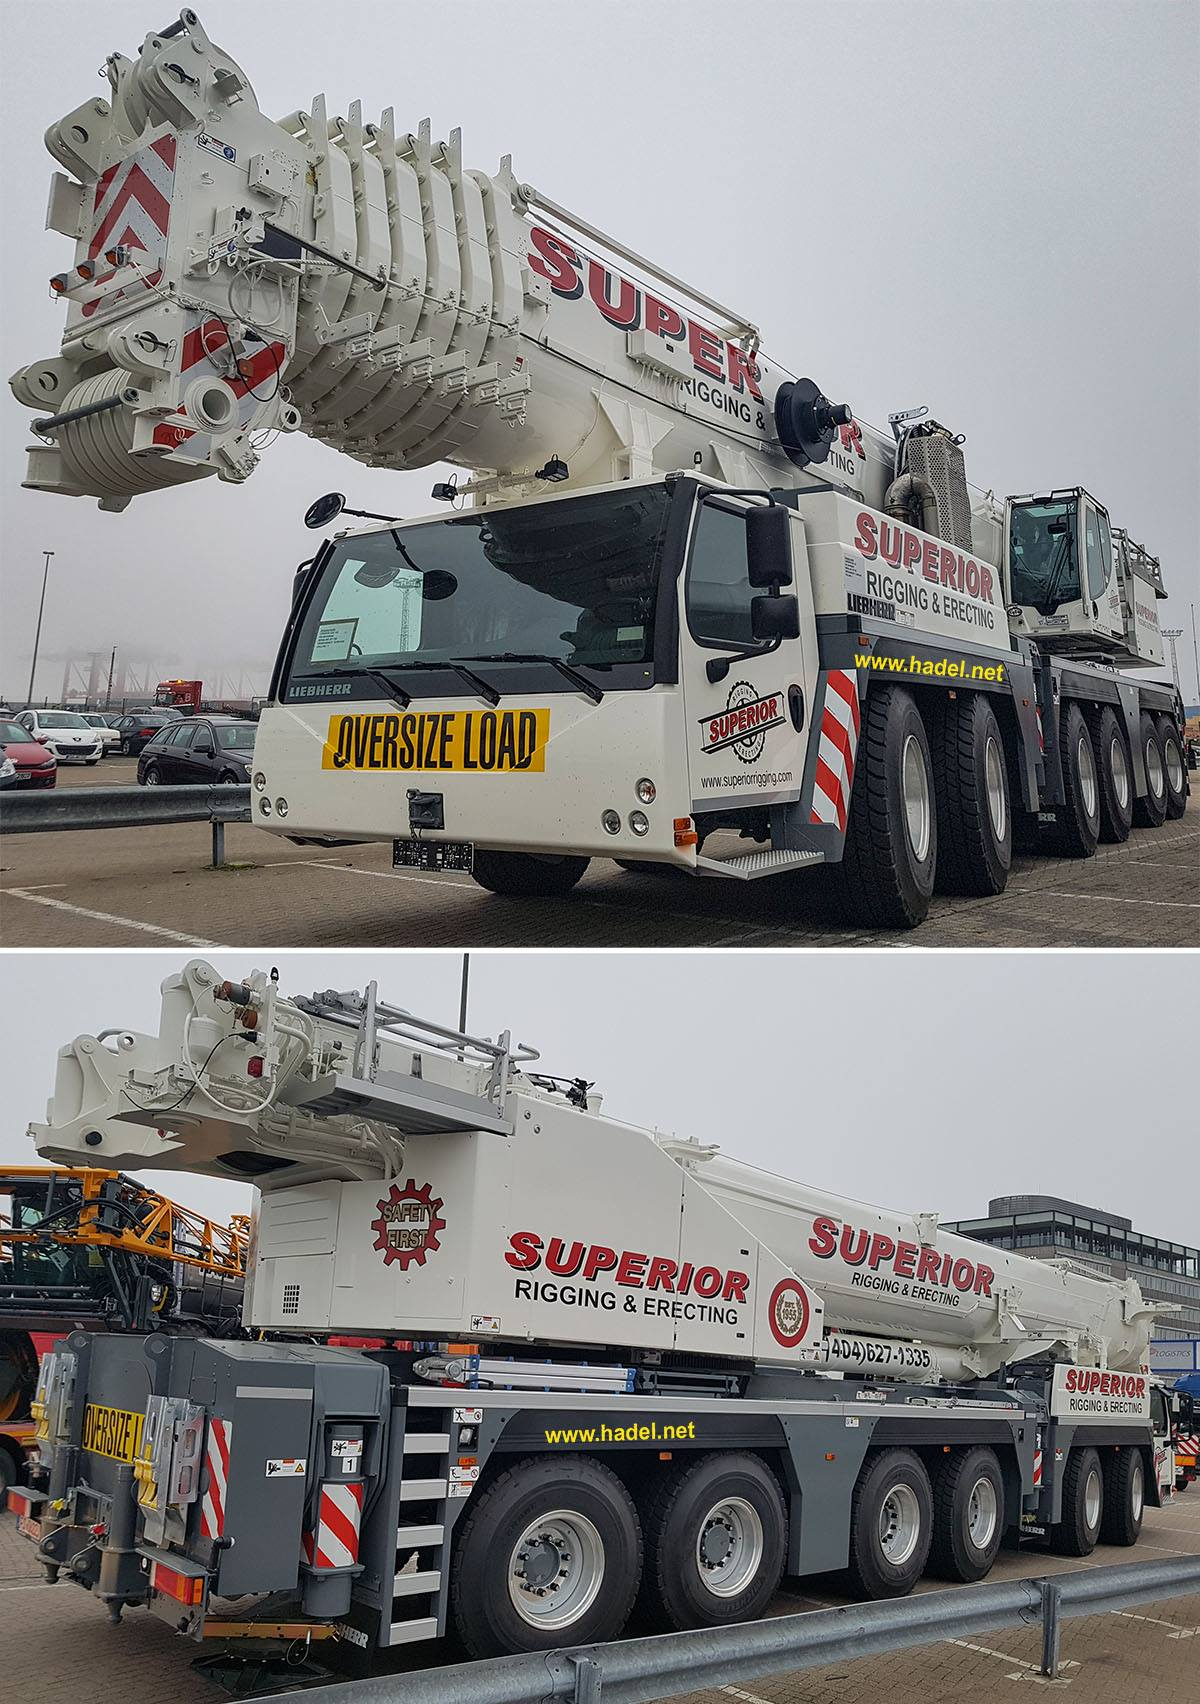 Liebherr LTM 1300-6.2 Superior Rigging & Erecting